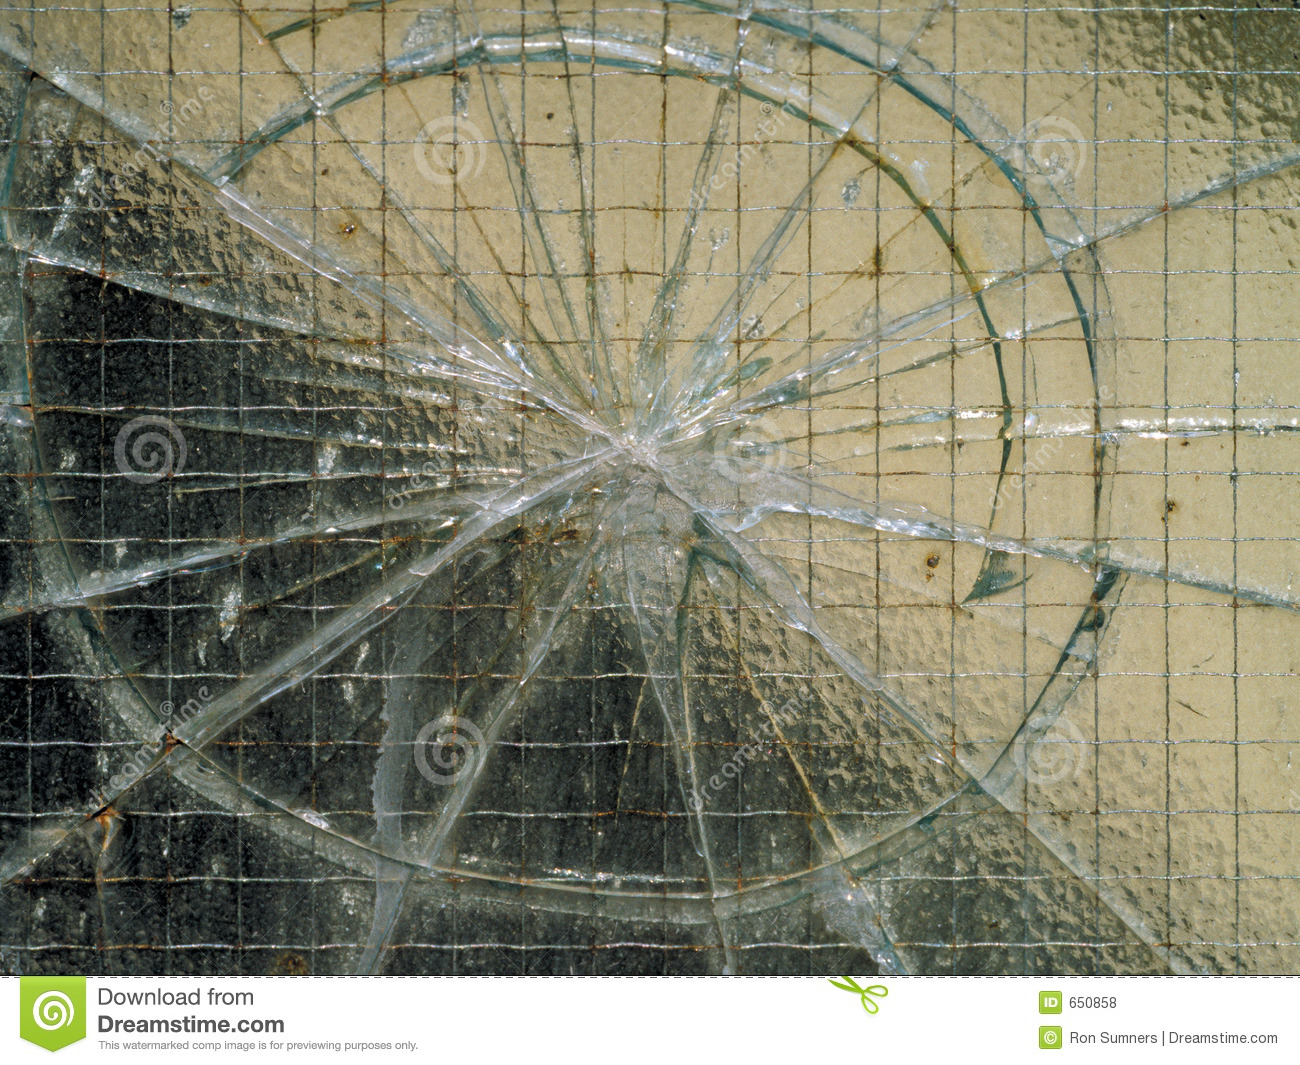 how to draw a cracked window